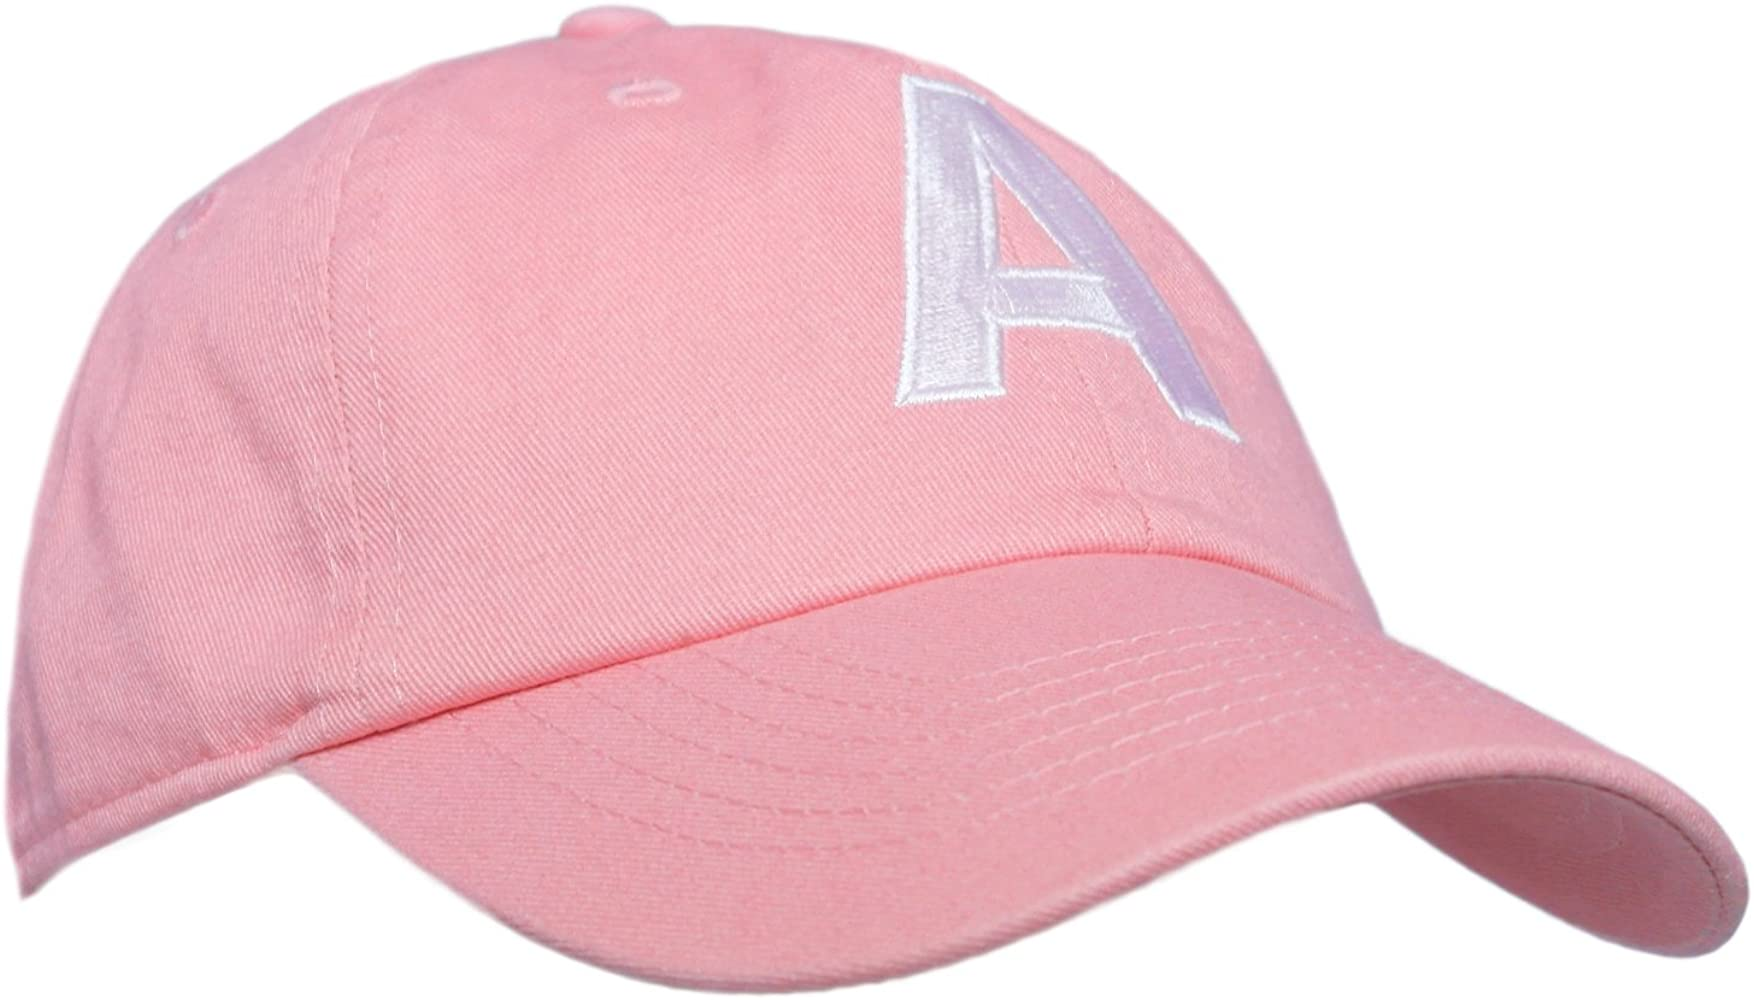 a5d24972f Amazon.com: Tiny Expressions Toddler Girls' Pink Embroidered Initial ...